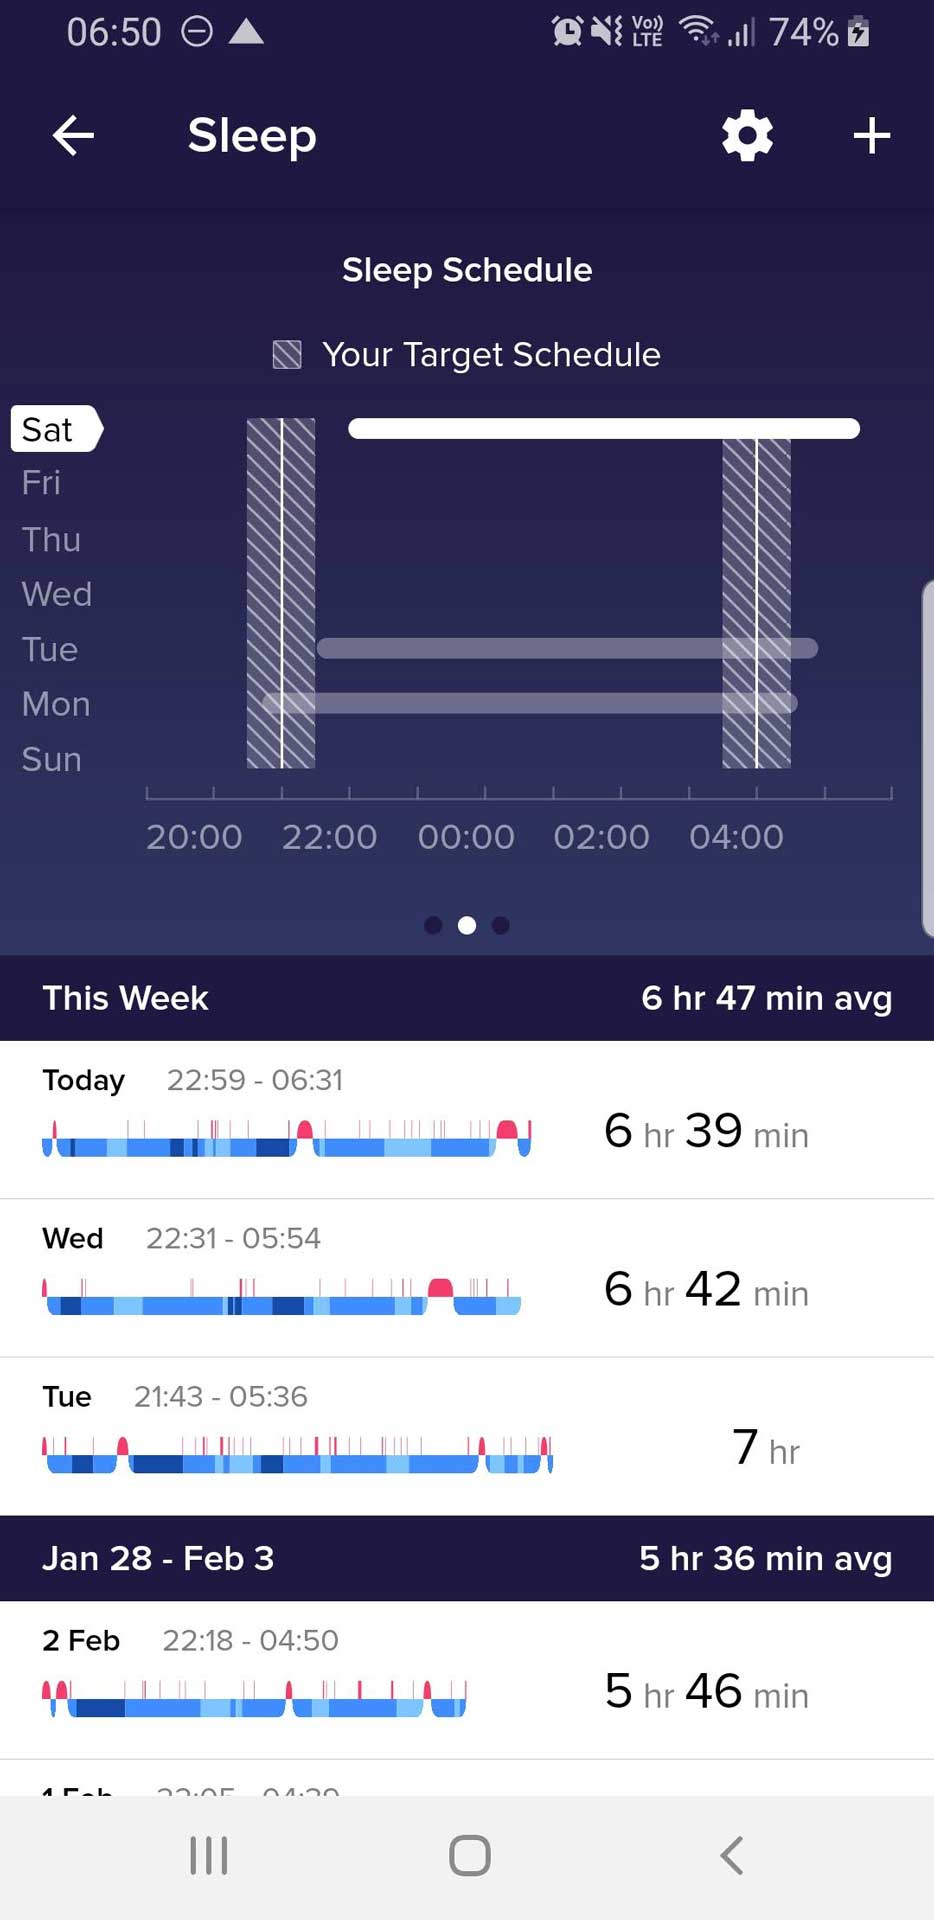 Sleep Tracking with Fitbit Charge 3: Data in the Fitbit App